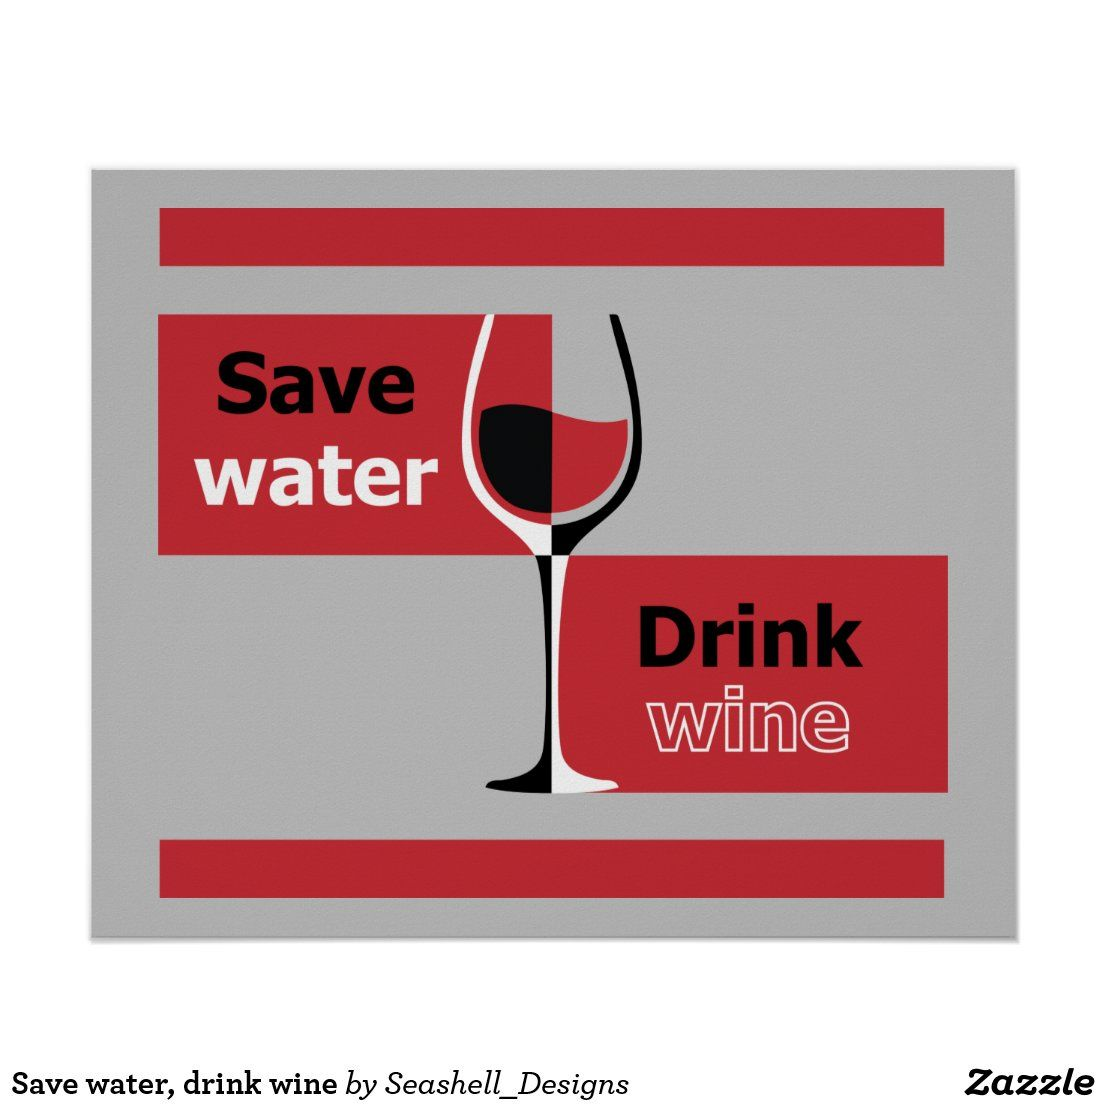 Save Water Drink Wine Poster Zazzle Com In 2020 Wine Poster Wine Drinks Save Water Drink Wine